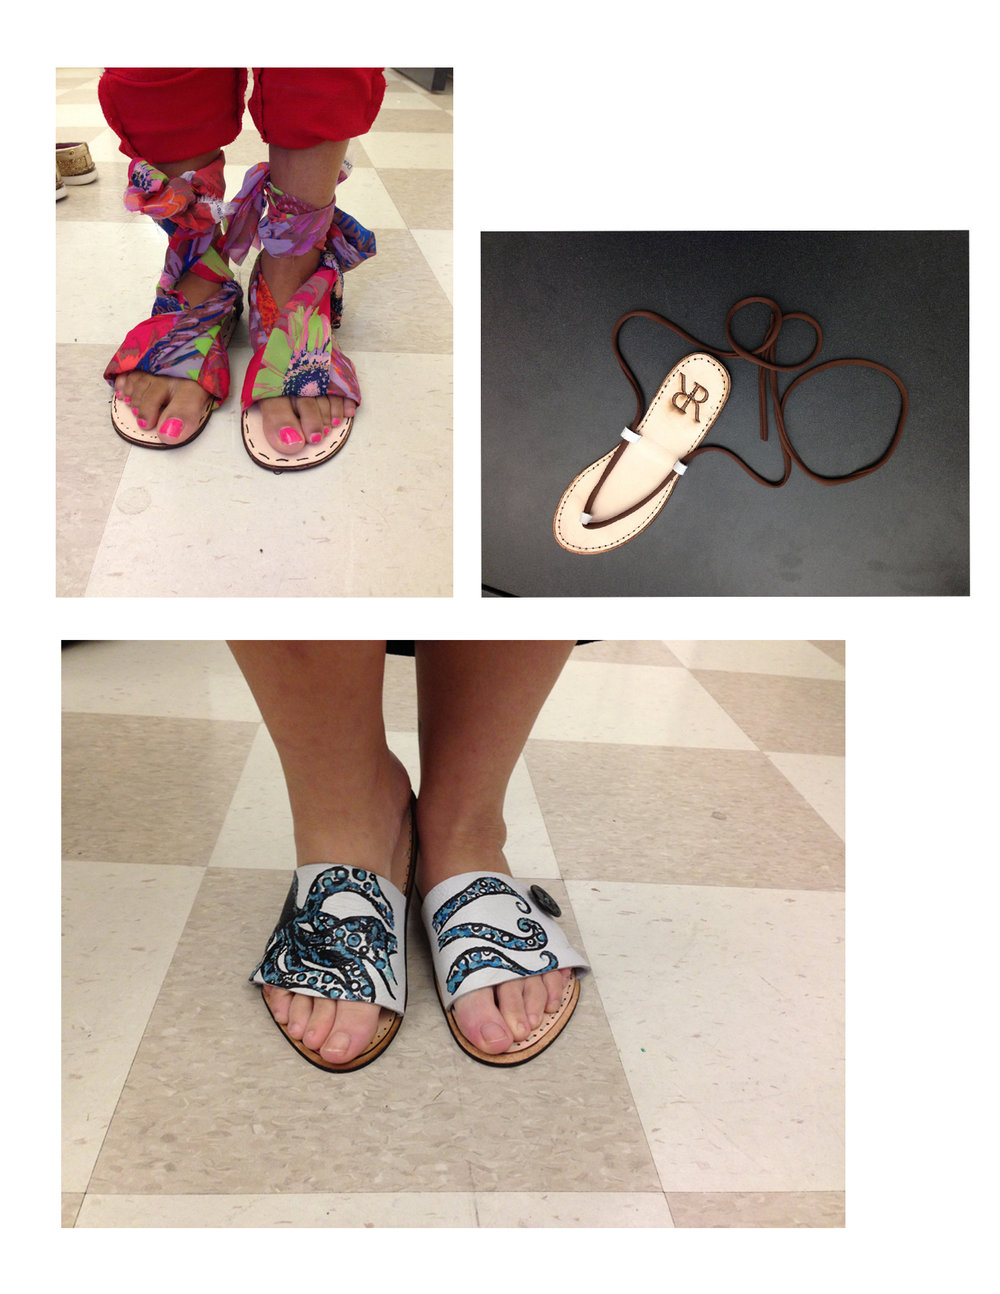 Student Samples: Leather and textile shoes created with lasercutter, hand sewing, and leather dyes.